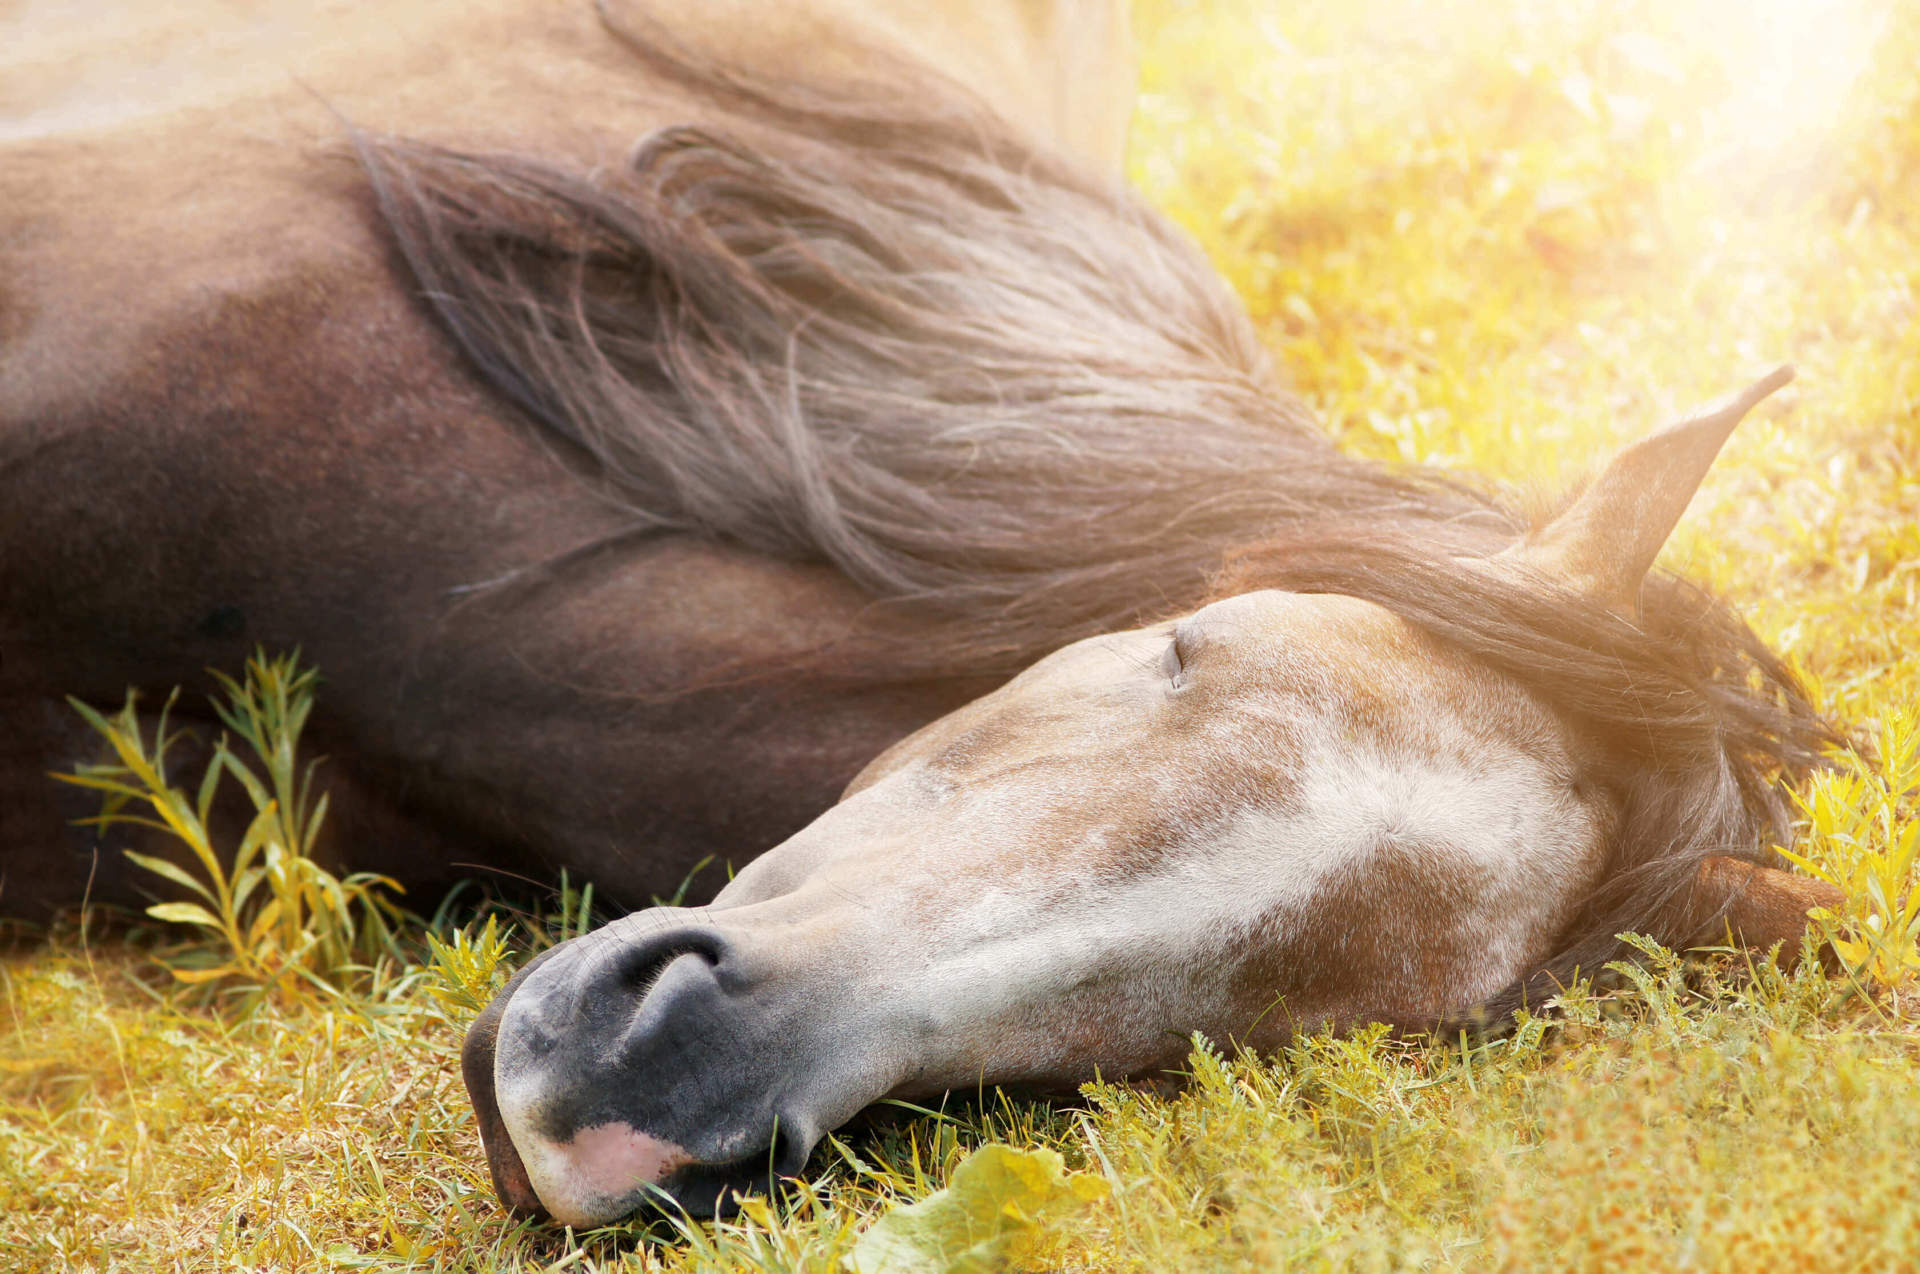 Horse laying in the sun